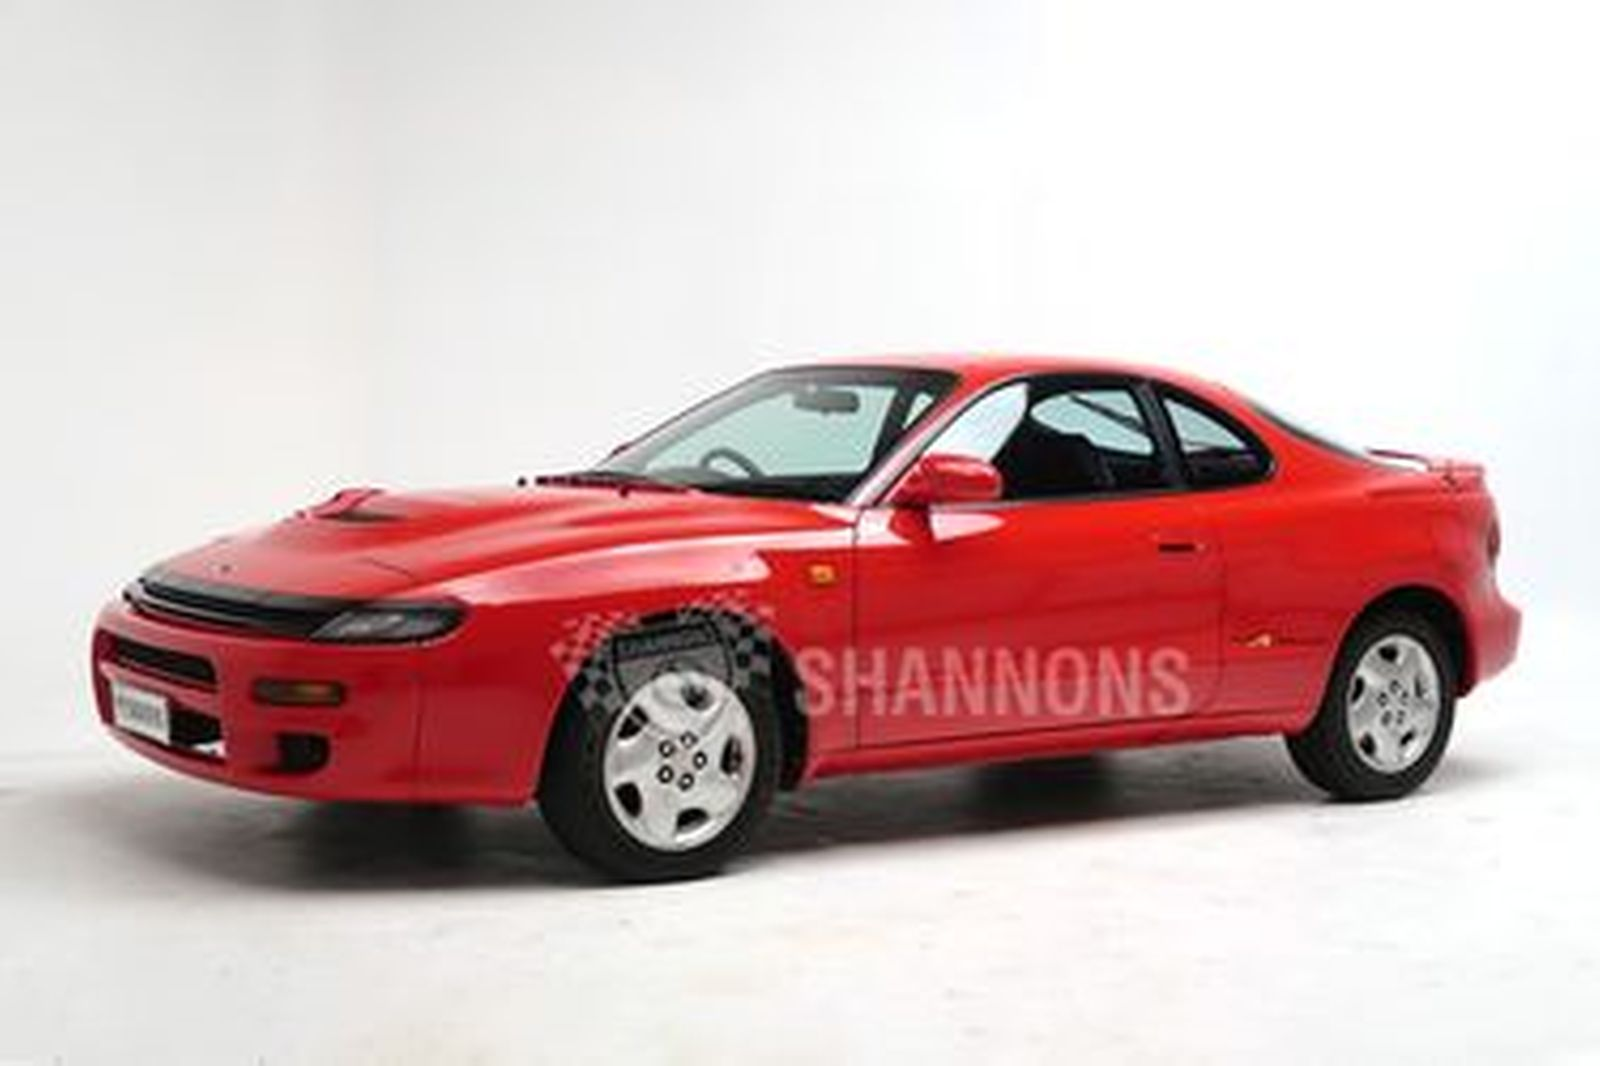 Sold Toyota Celica Gt4 Group A Rallye Carlos Sainz Edition Coupe Build 67 Auctions Lot 116 Shannons